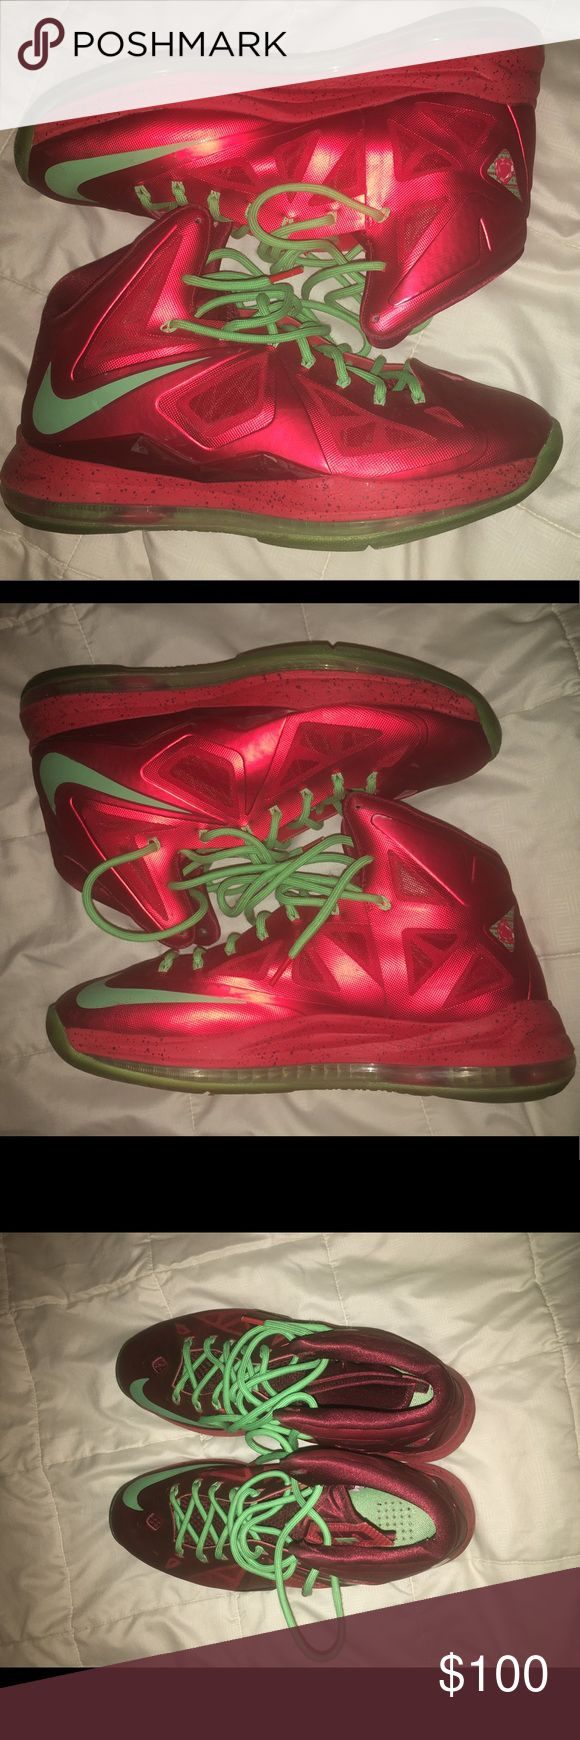 "Nike Lebron 11 ""Christmas"" Size 11.5 The shoes are size 11.5 and they are in great condition, is say about a 9.2/10 and I've worn them 3 times...even the bottoms are still crispy. Enjoy! Nike Shoes Sneakers"